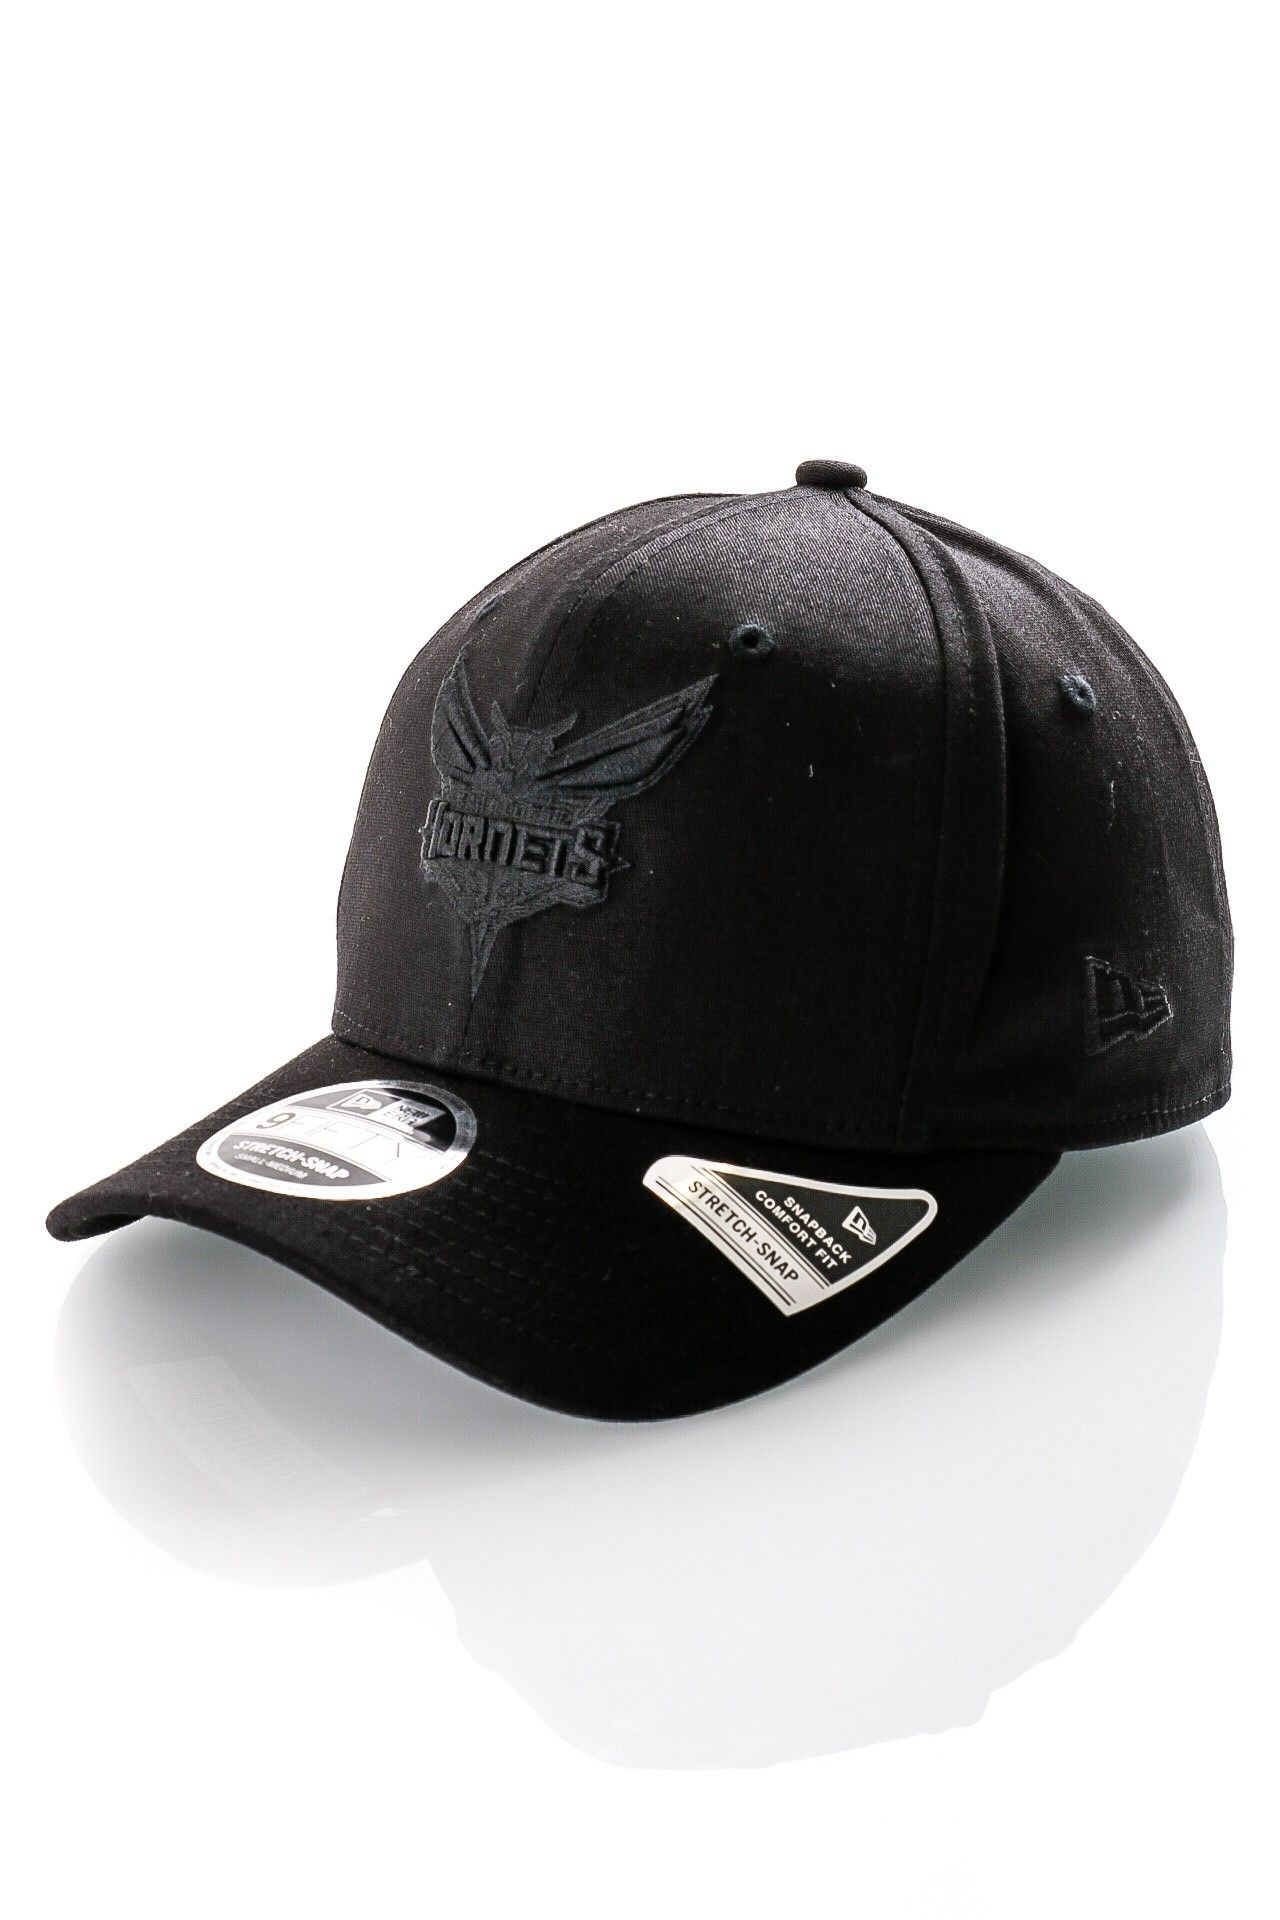 Afbeelding van New Era Snapback Cap Tonal Black 9Fifty Stretch Snap Blk 12285246